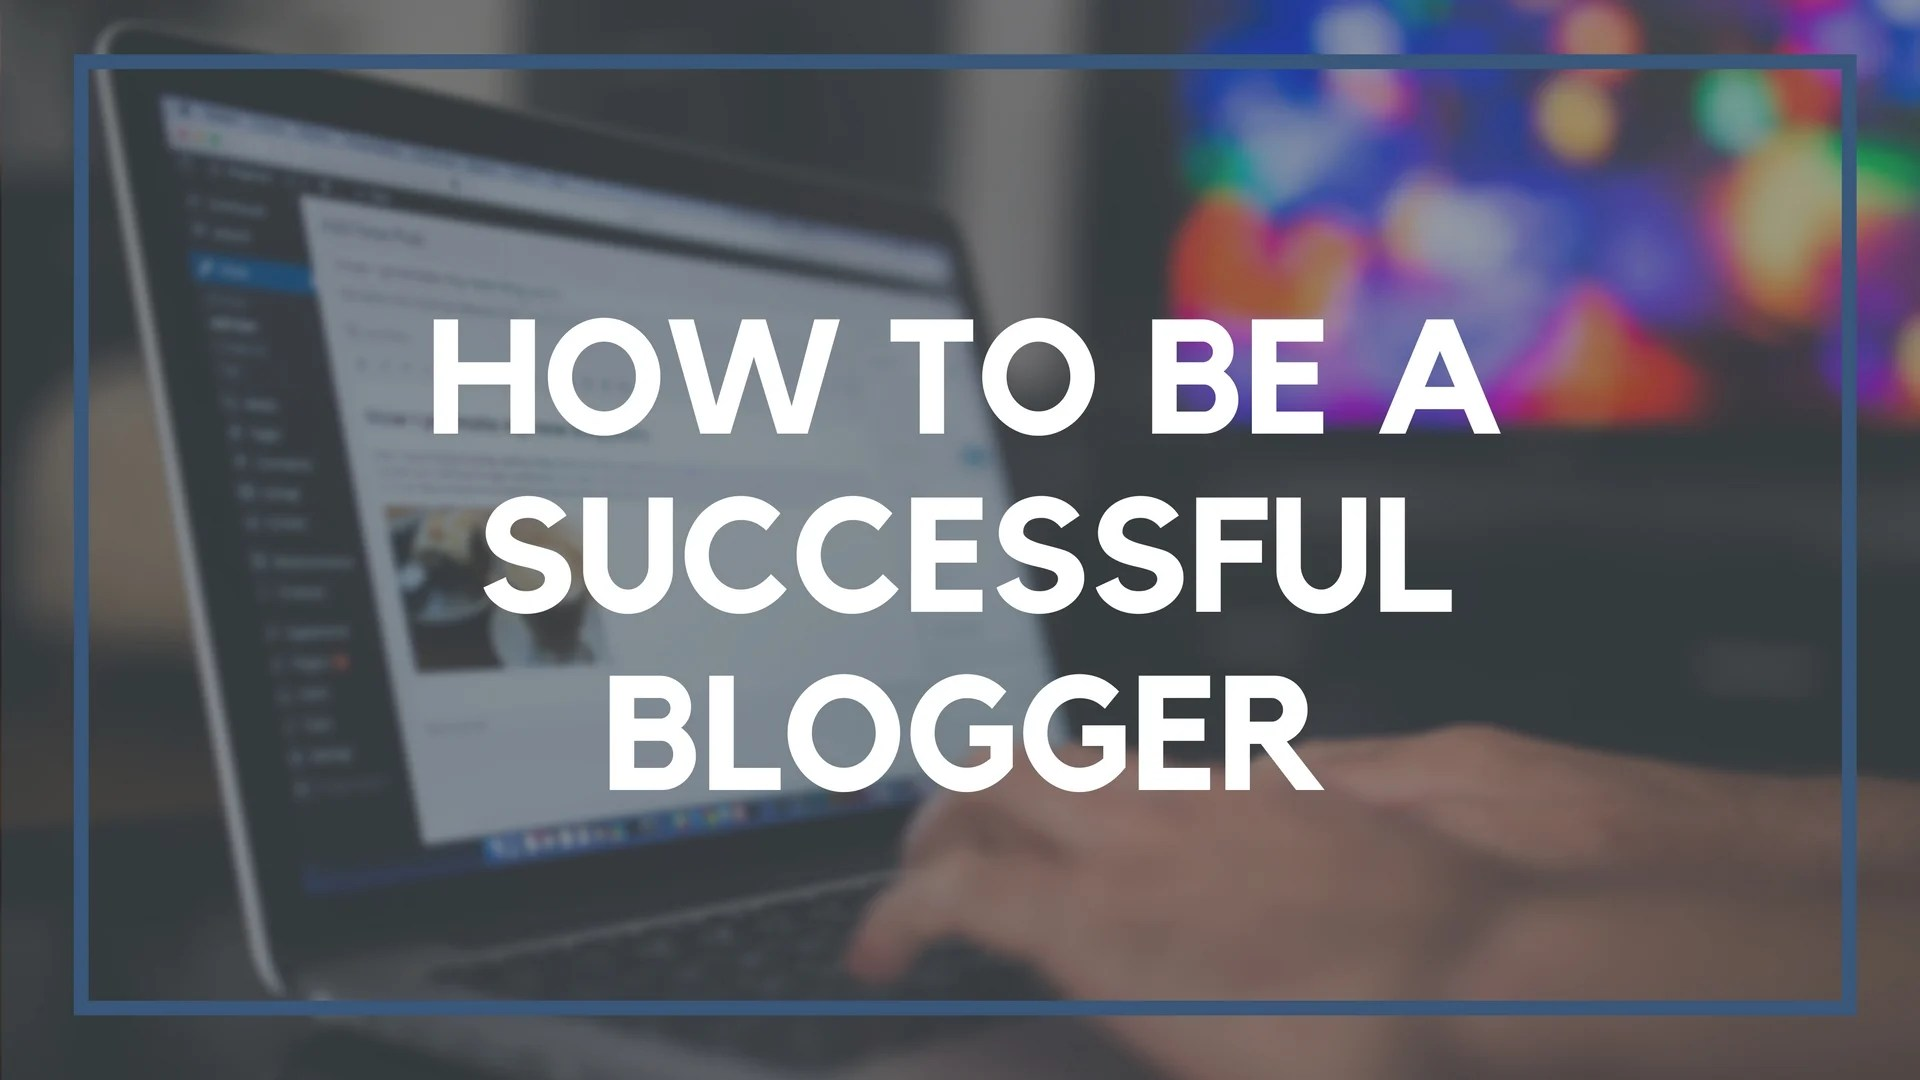 How to Be a Successful Blogger in 2020 - Beginners Ultimate Guide (Screenshots & Pictures) 1